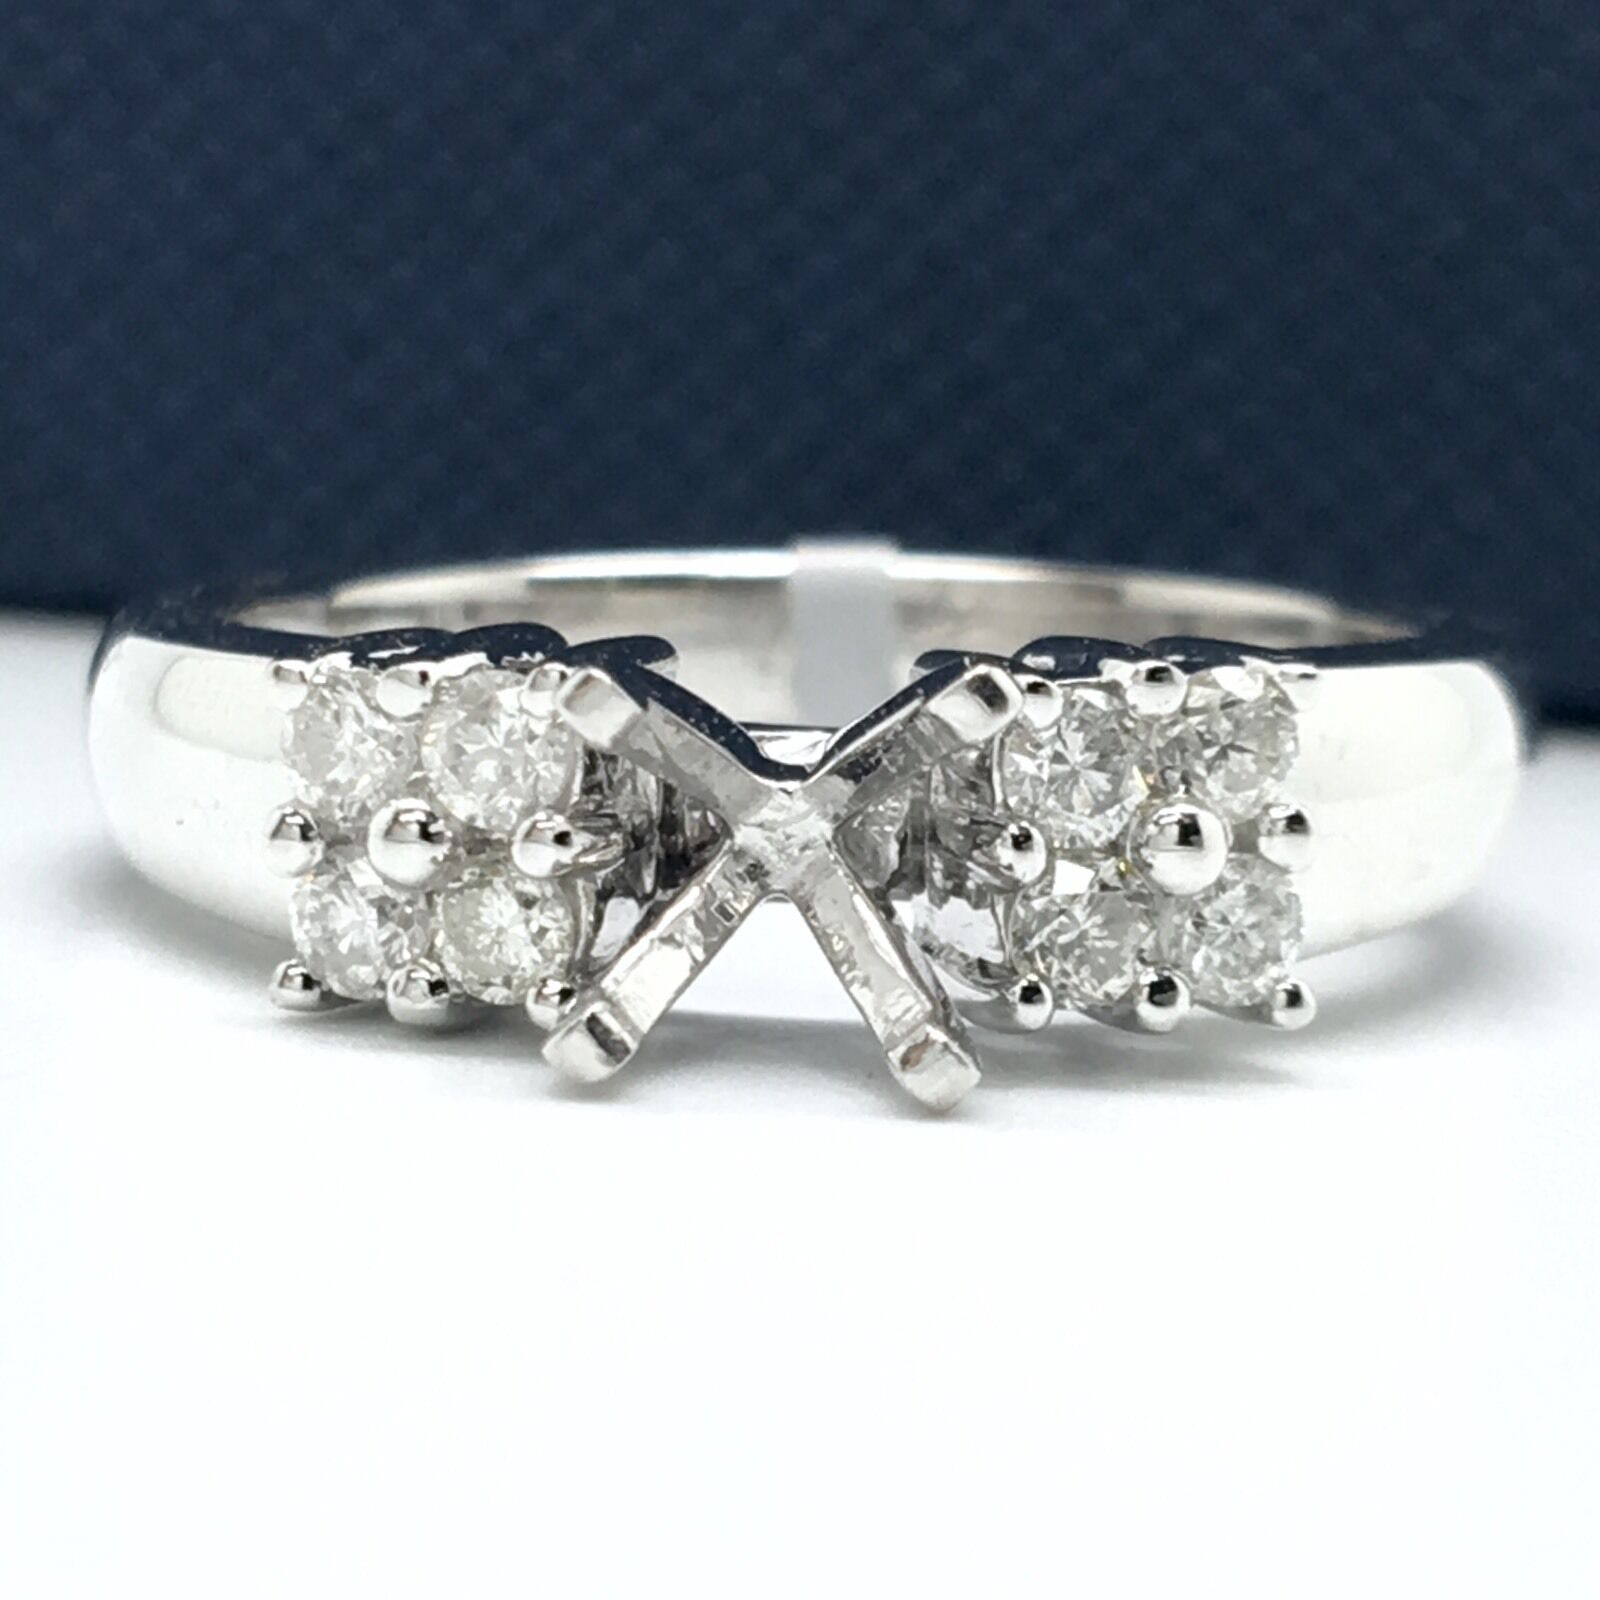 18k White gold Semi-mounting Diamond Ring. Total Diamond Weight 0.31ct